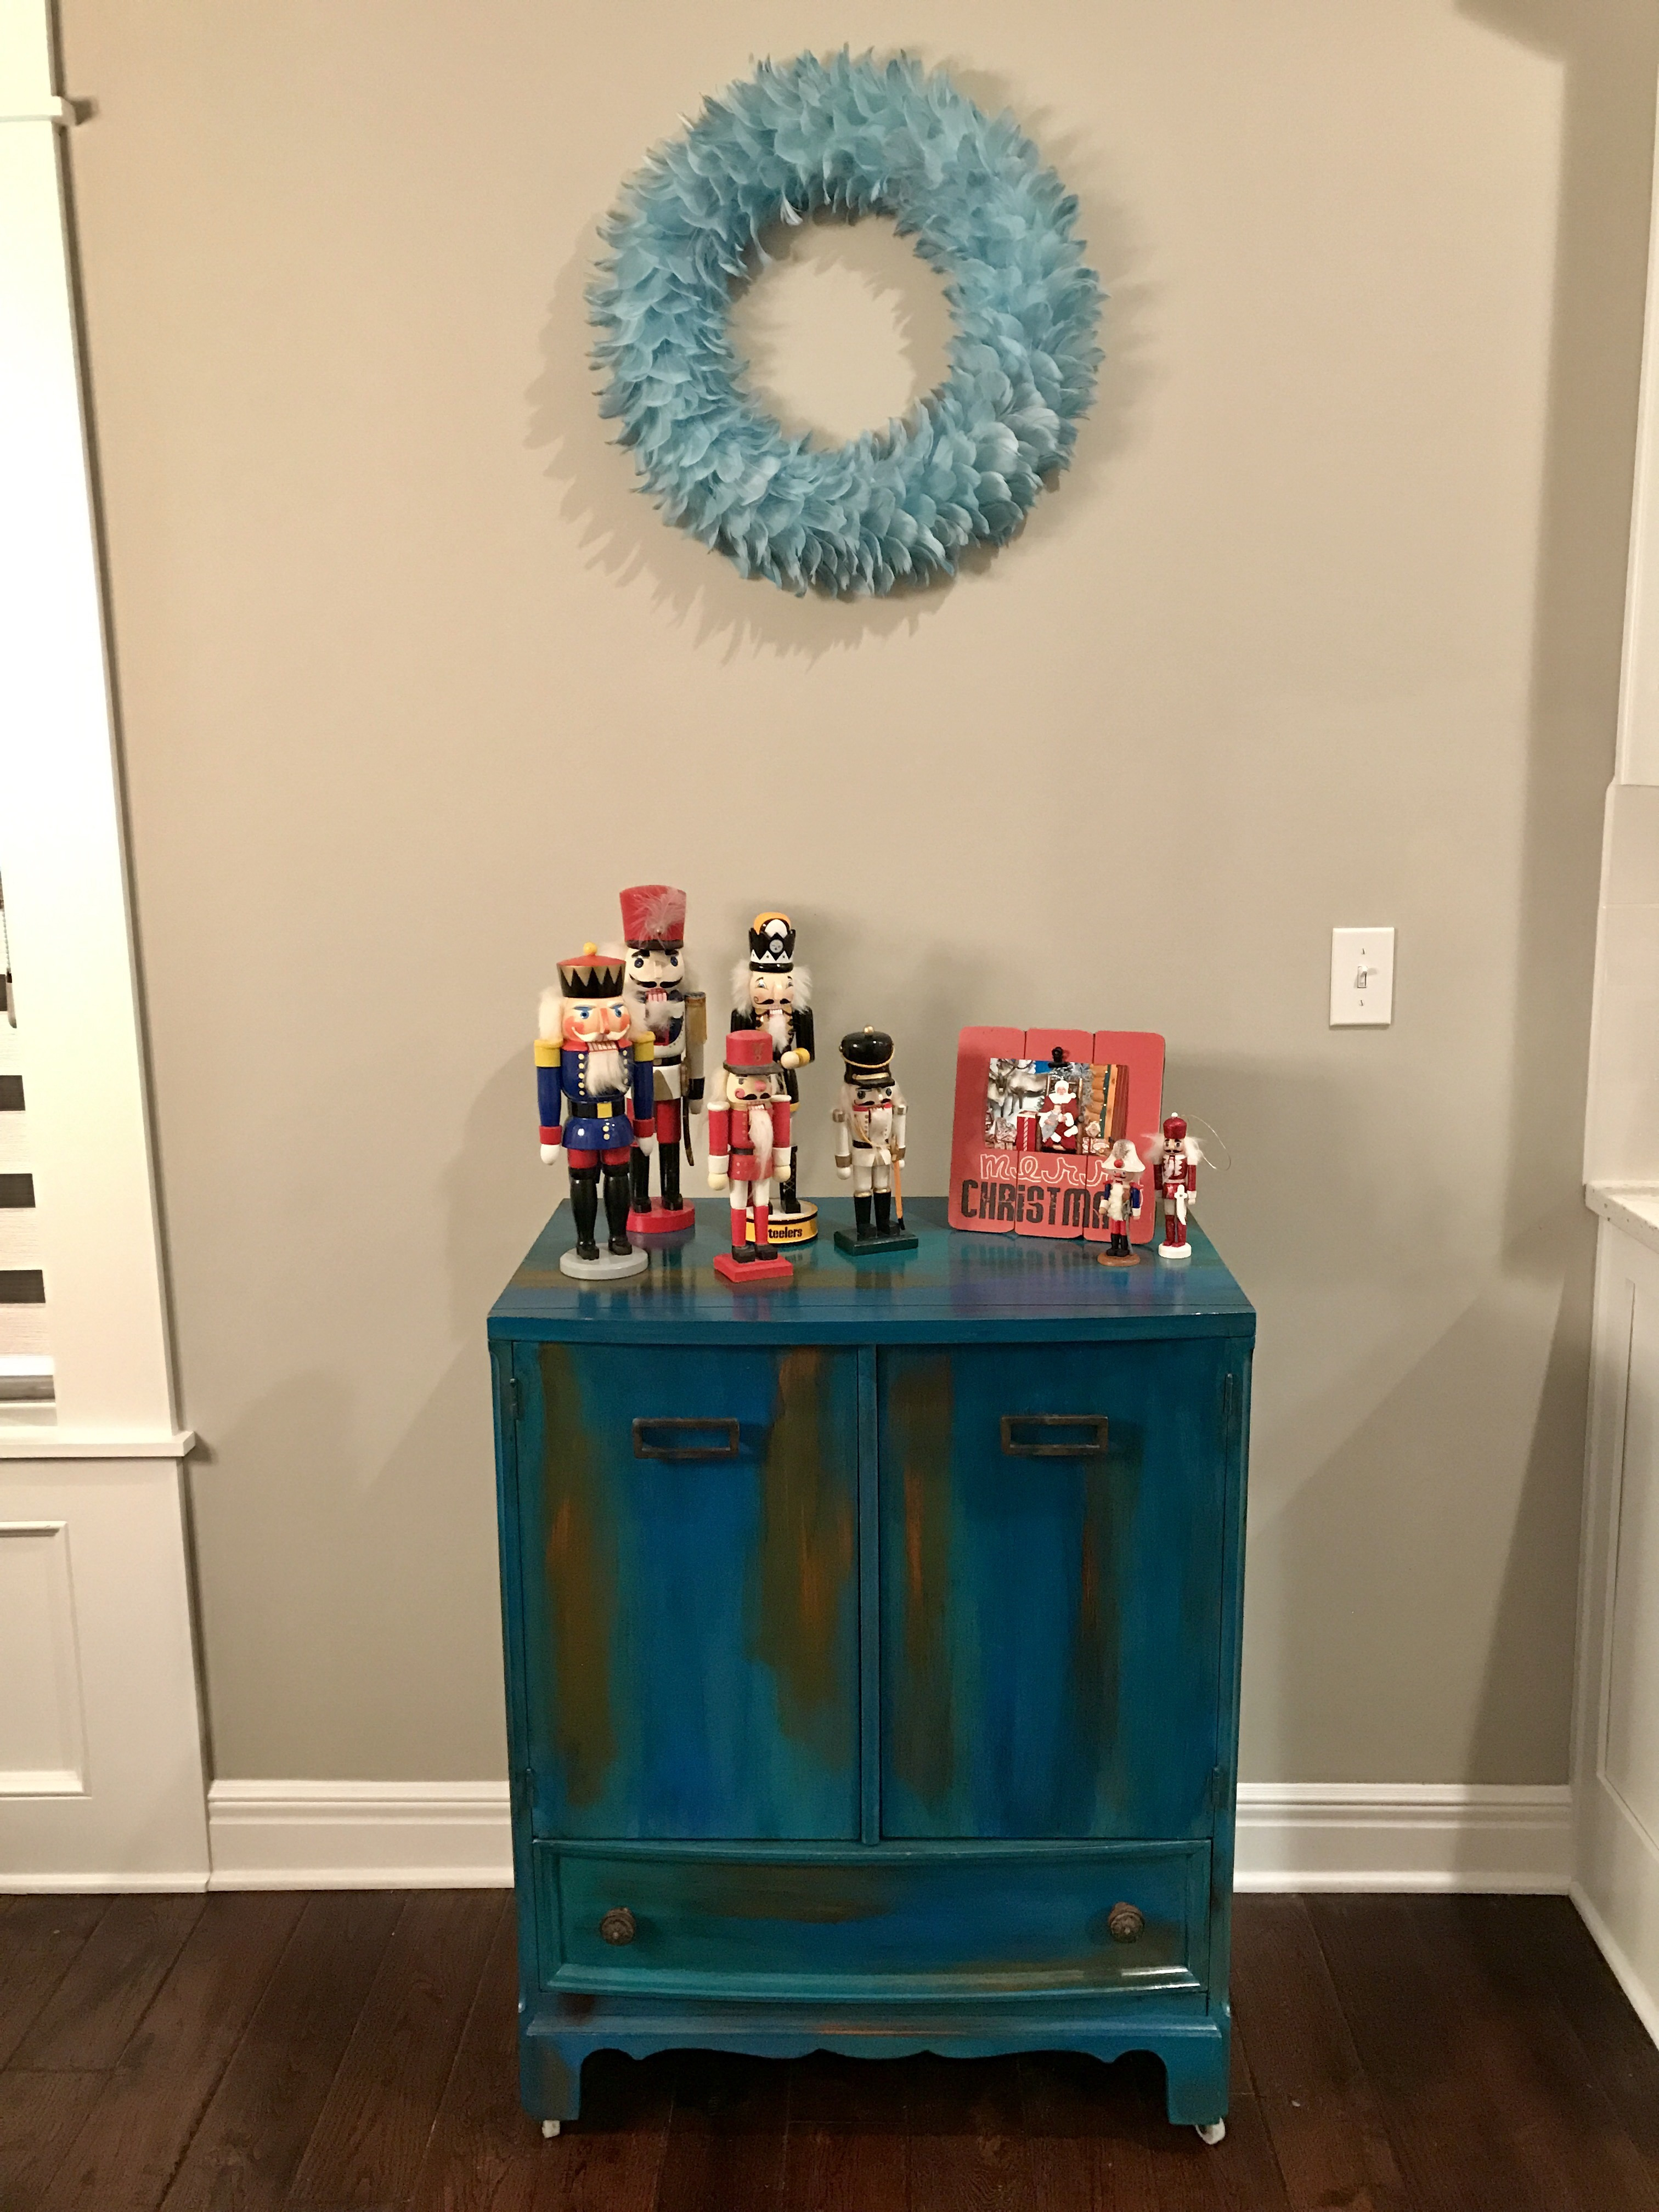 Bermuda Blended Cabinet Donning Both of My Late Grandmothers' Nutcrackers At Christmastime